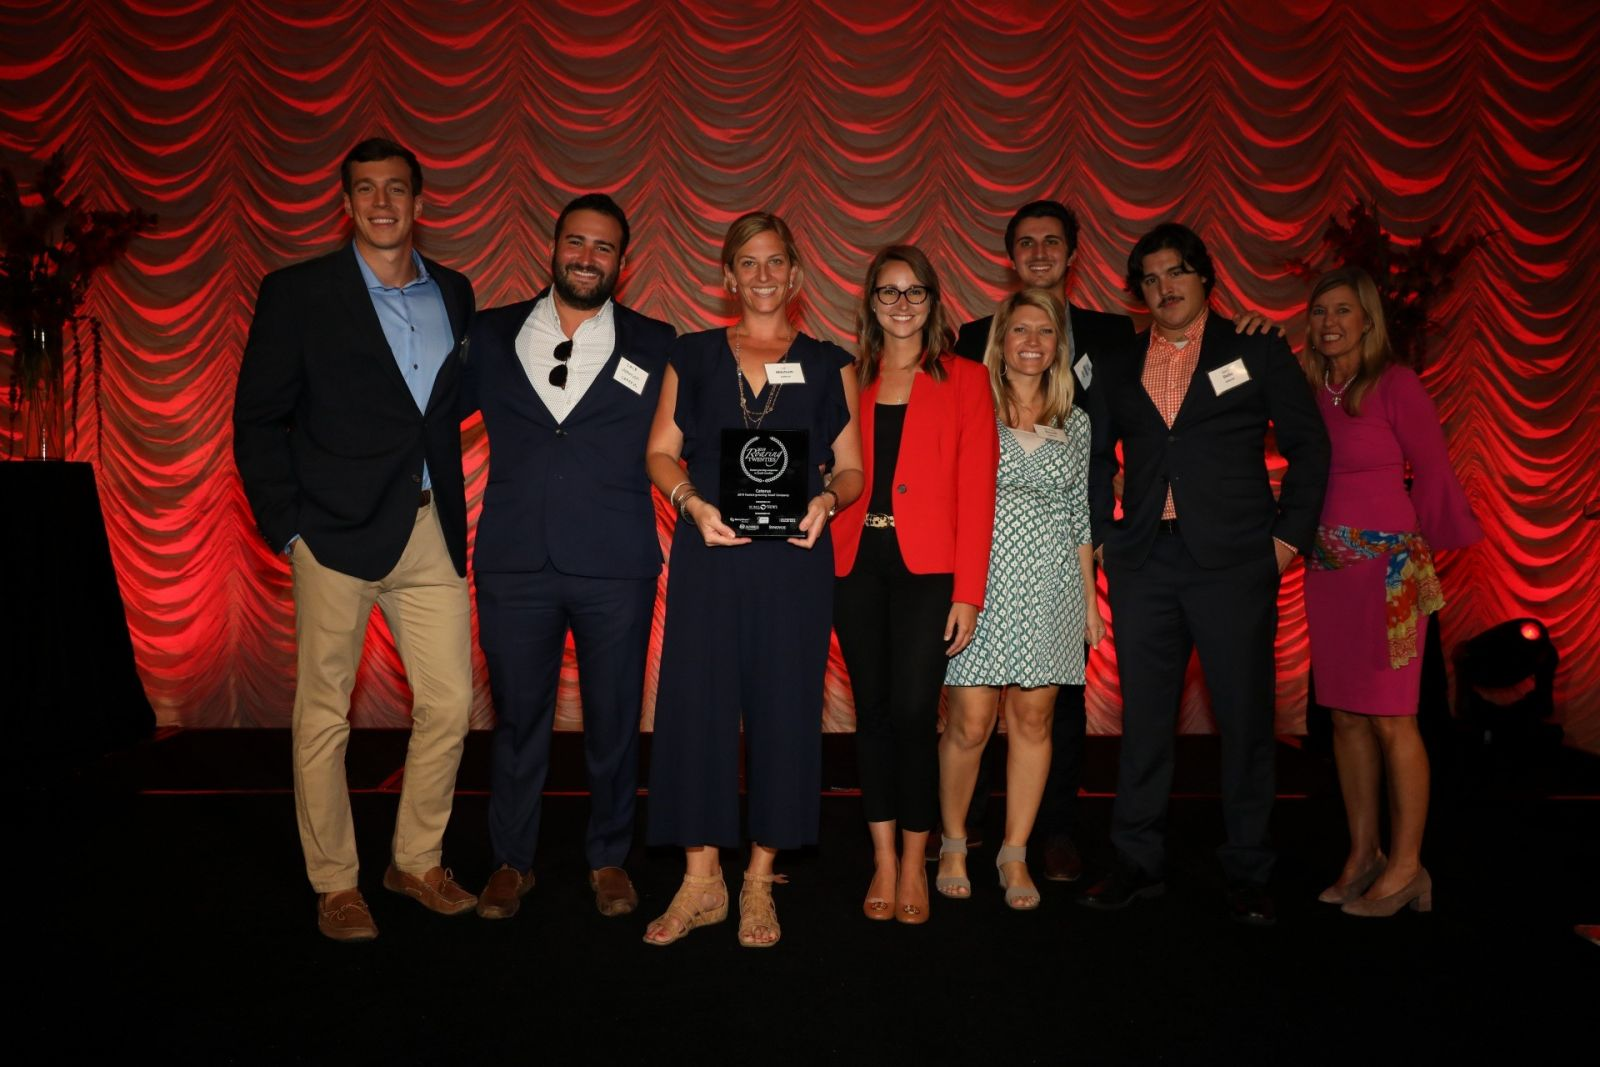 Winners of Roaring 20s recognition smile on Thursday. The annual SC Biz News event recognized the state's 20 fastest-growing companies in large and small categories. (Photo/Kim McManus)